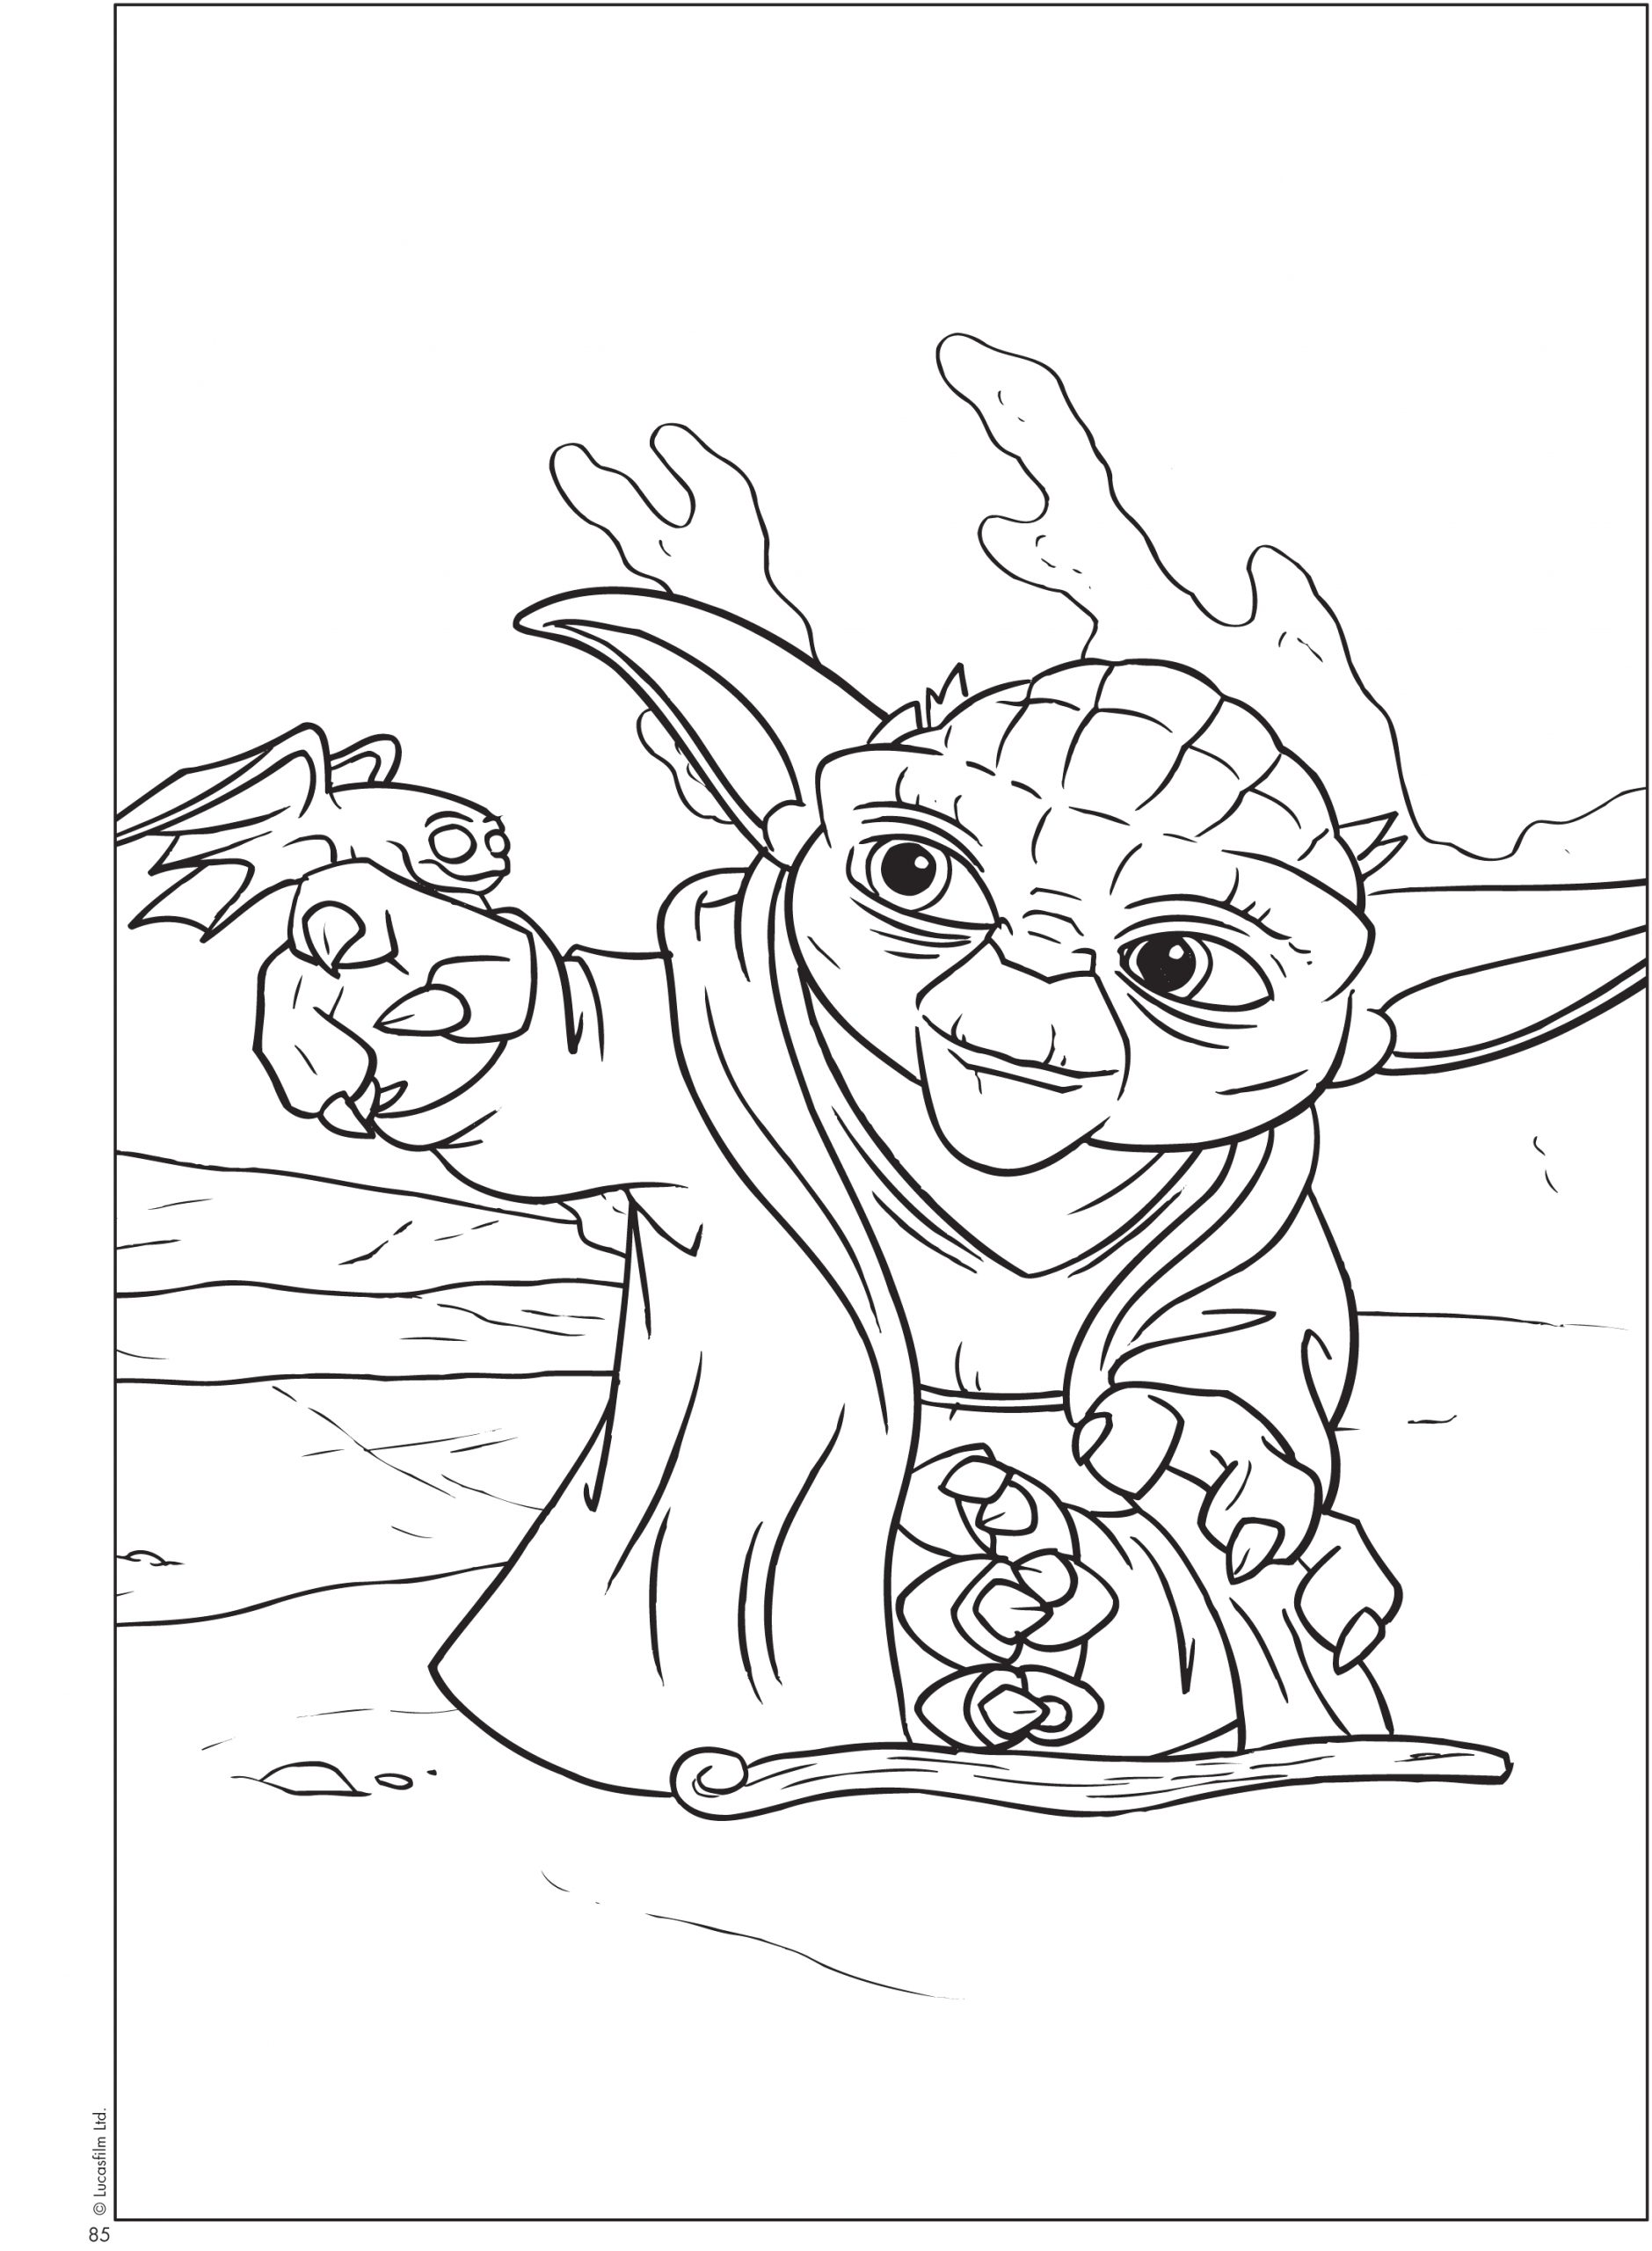 Free Star Wars Coloring Pages to Print Free Printable Star Wars Coloring Sheets Queen Of Free